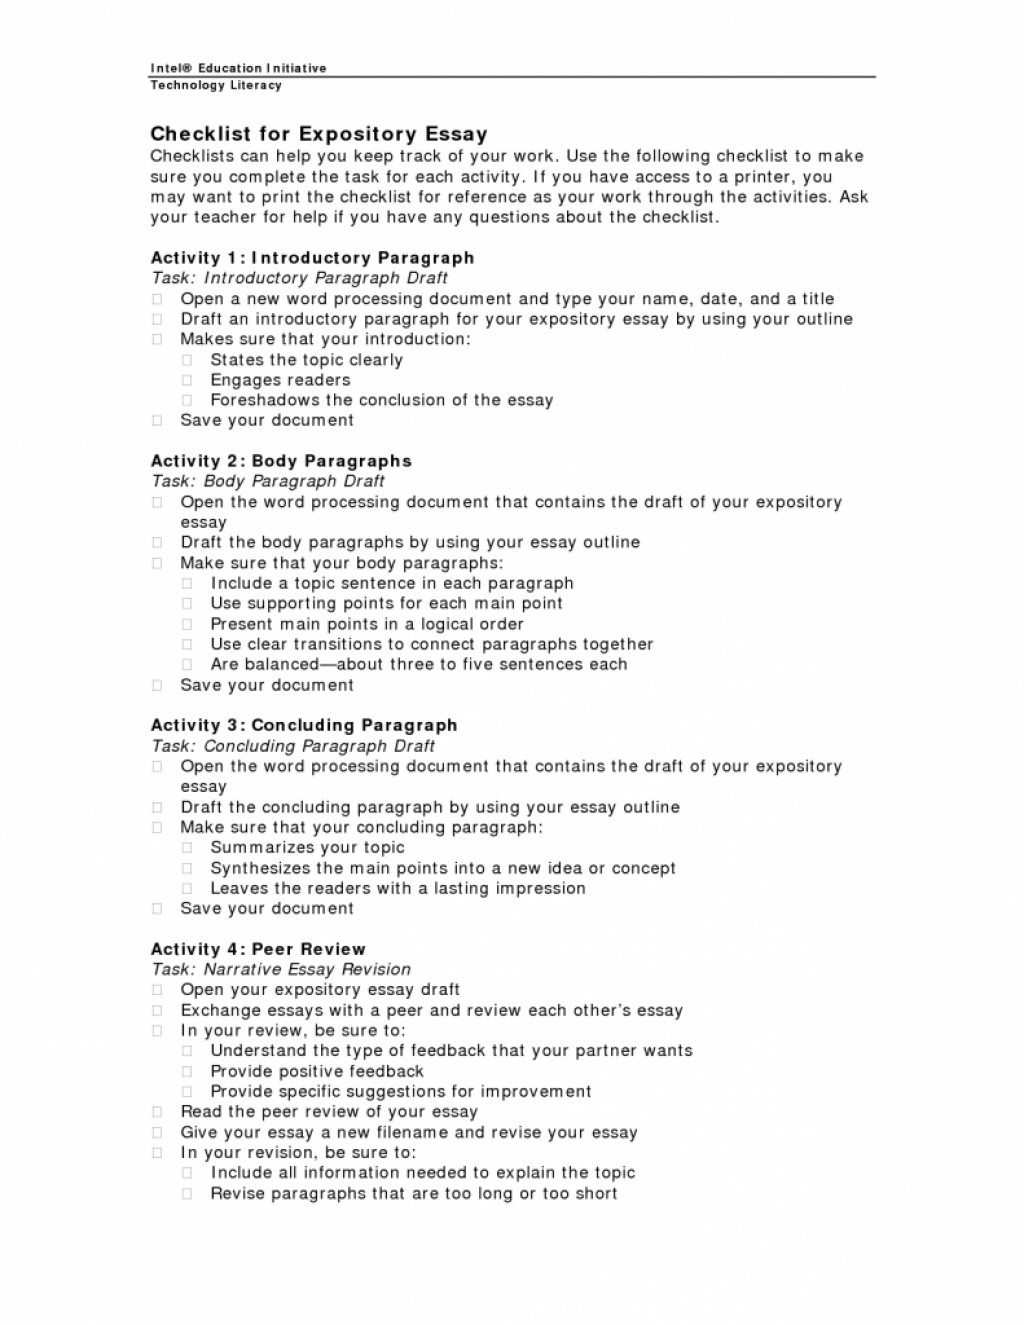 011 Informative Essay Format Expository Checklist 791x1024 Unbelievable Pdf Speech Informative/explanatory Large